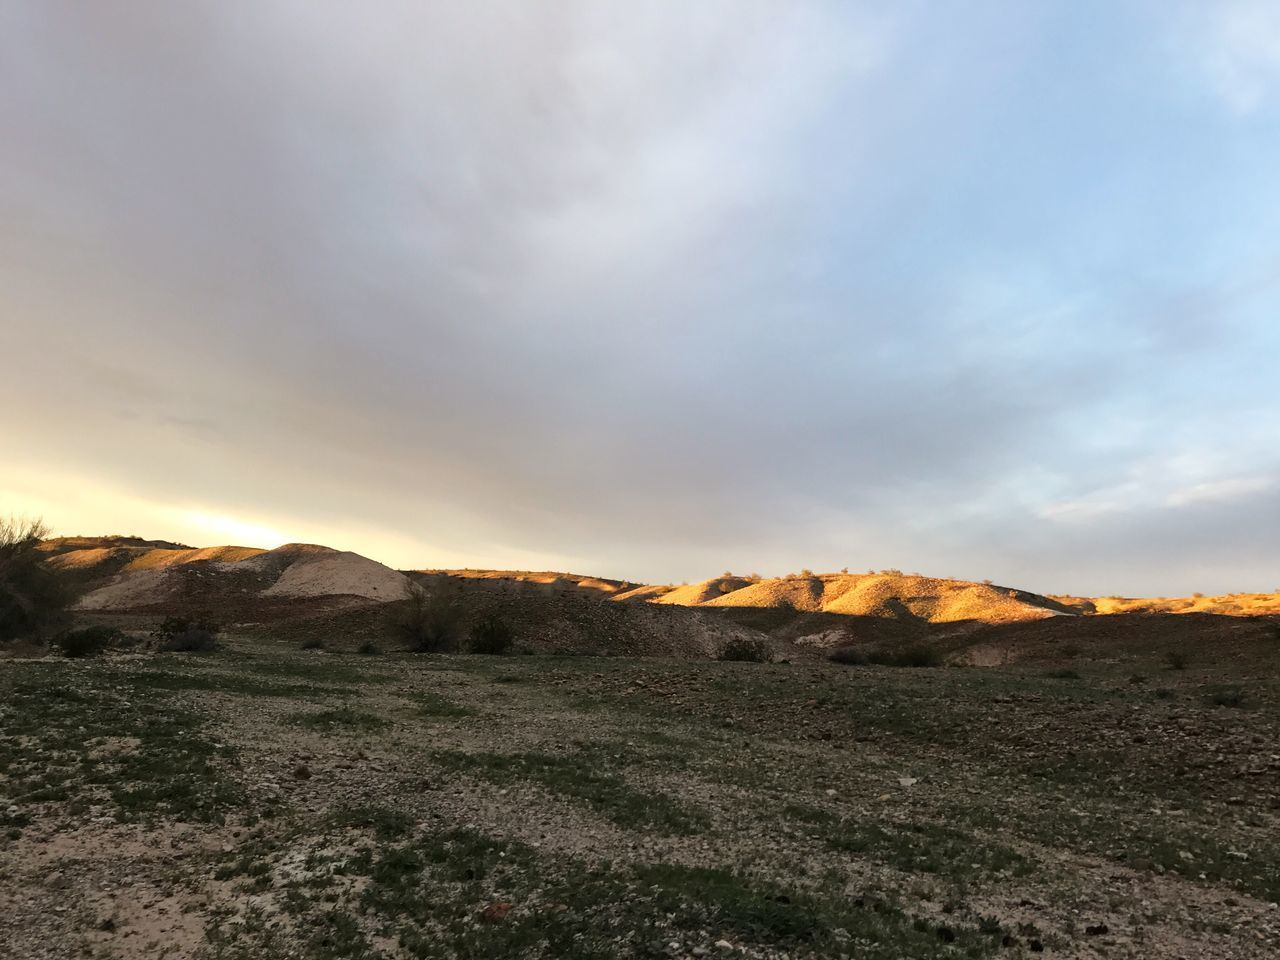 Nature Sky Tranquil Scene Landscape Scenics Beauty In Nature Tranquility No People Outdoors Sunlight And Shadow Remote Nature Geological Landscape Arid Climate